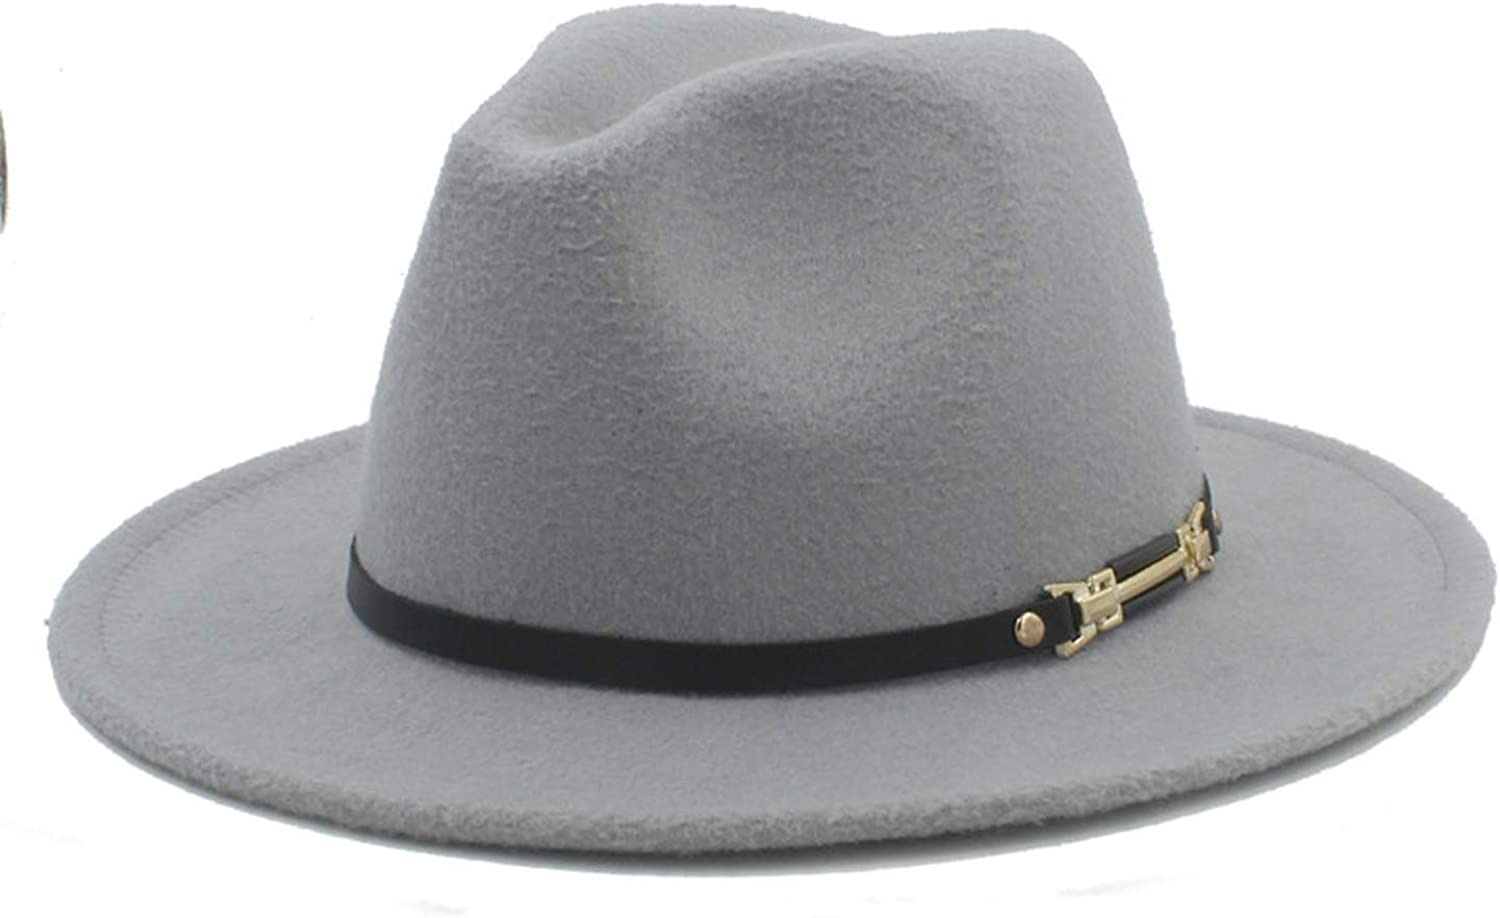 KKONION Fedora Hats for Gentleman Elegant Lady Winter Autumn Floppy Cloche Wide Brim Jazz